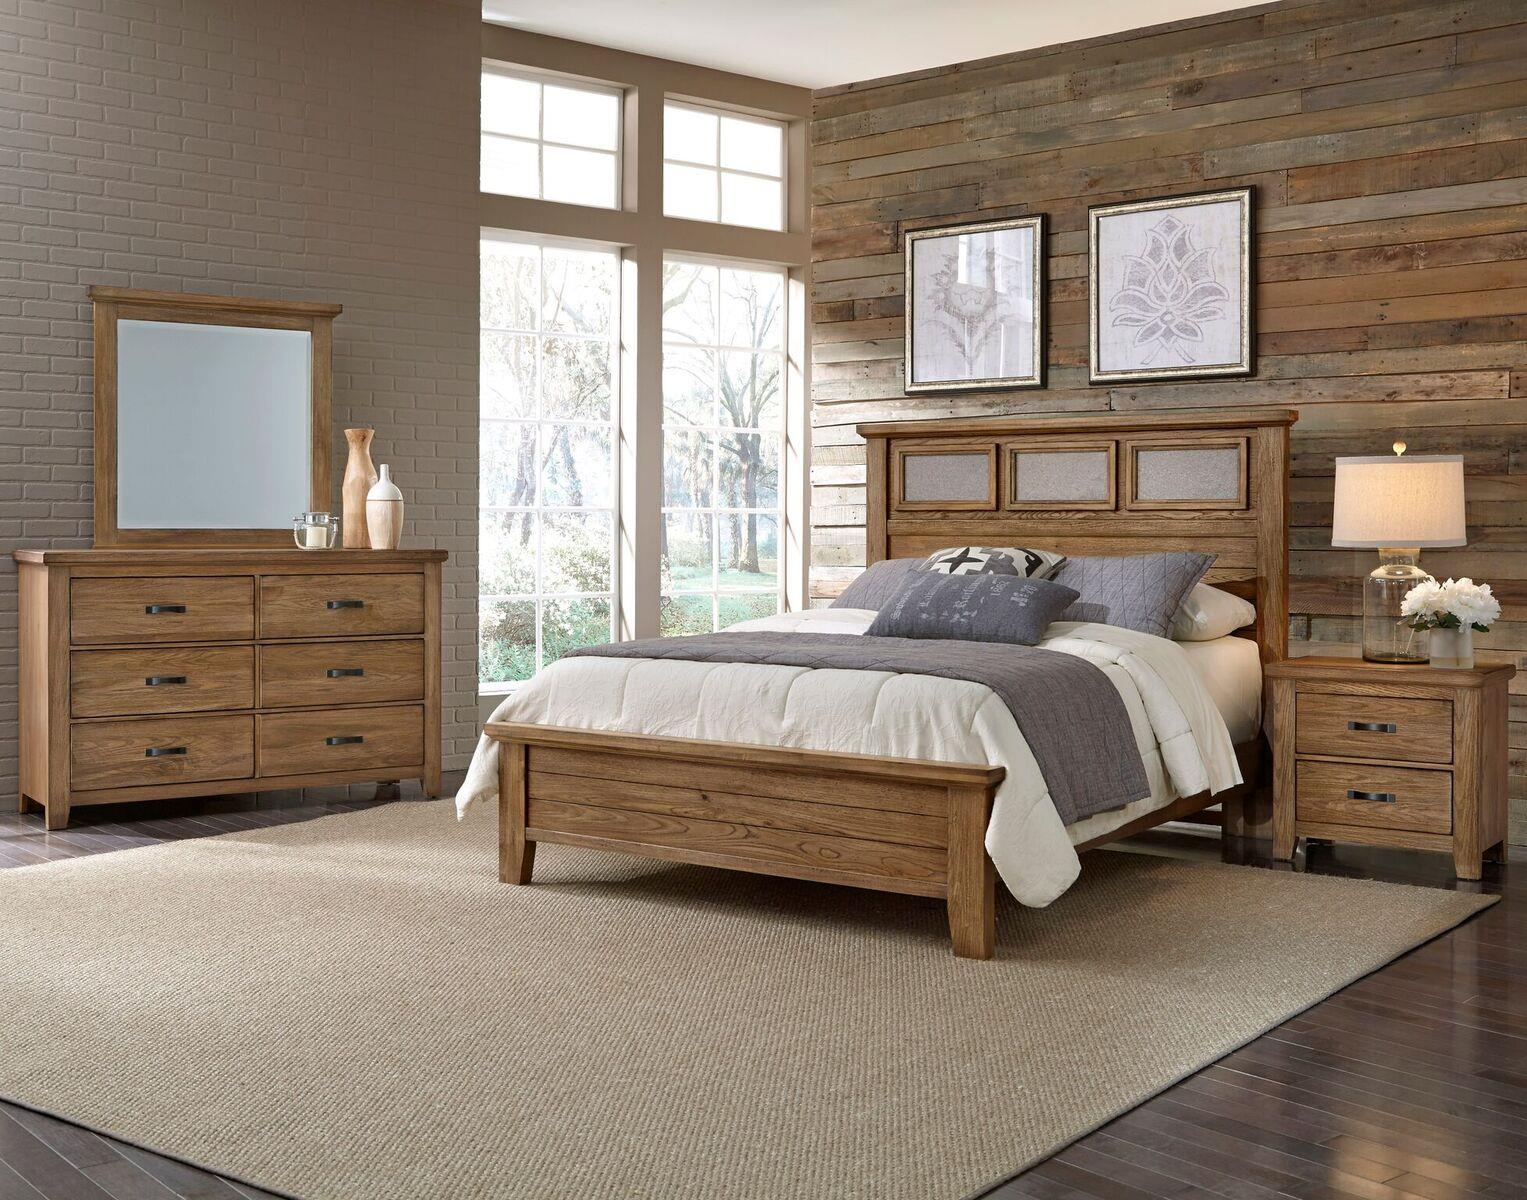 Vaughan Bassett Gramercy Park Queen Bedroom Group - Item Number: 514 Q Bedroom Group 2